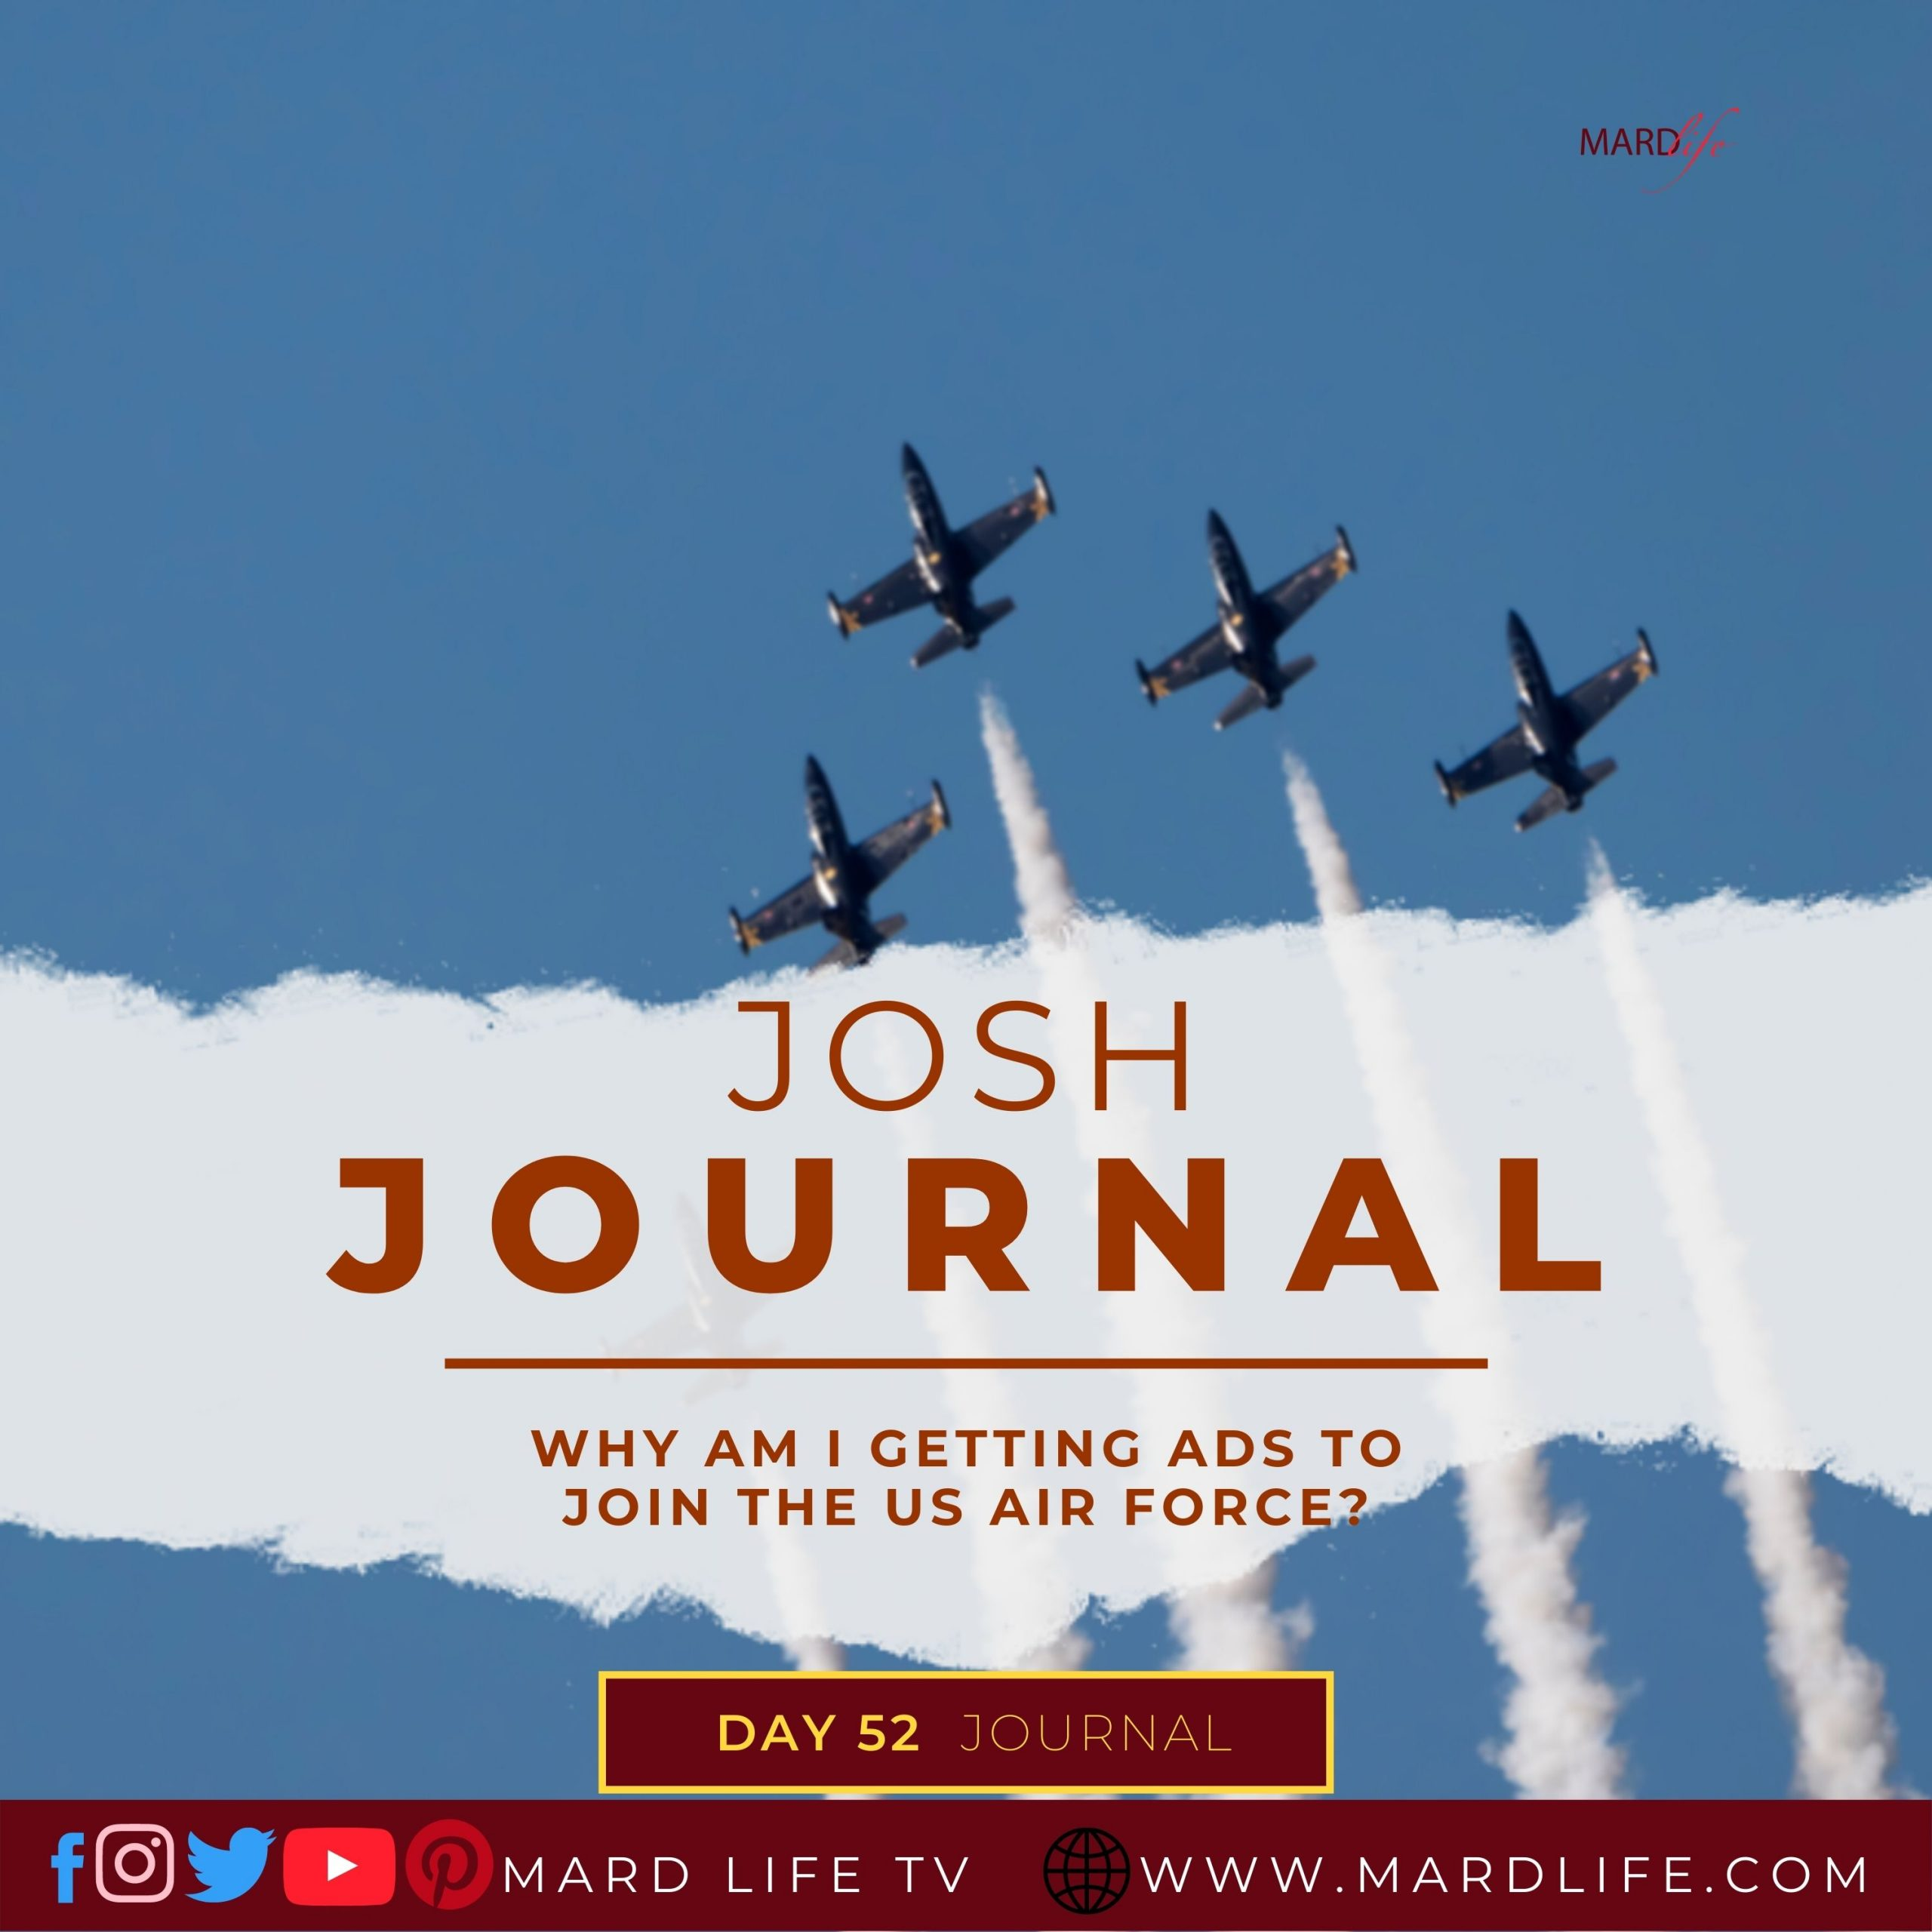 Why Am I Getting Ads To Join The US Air Force? – Josh Journal